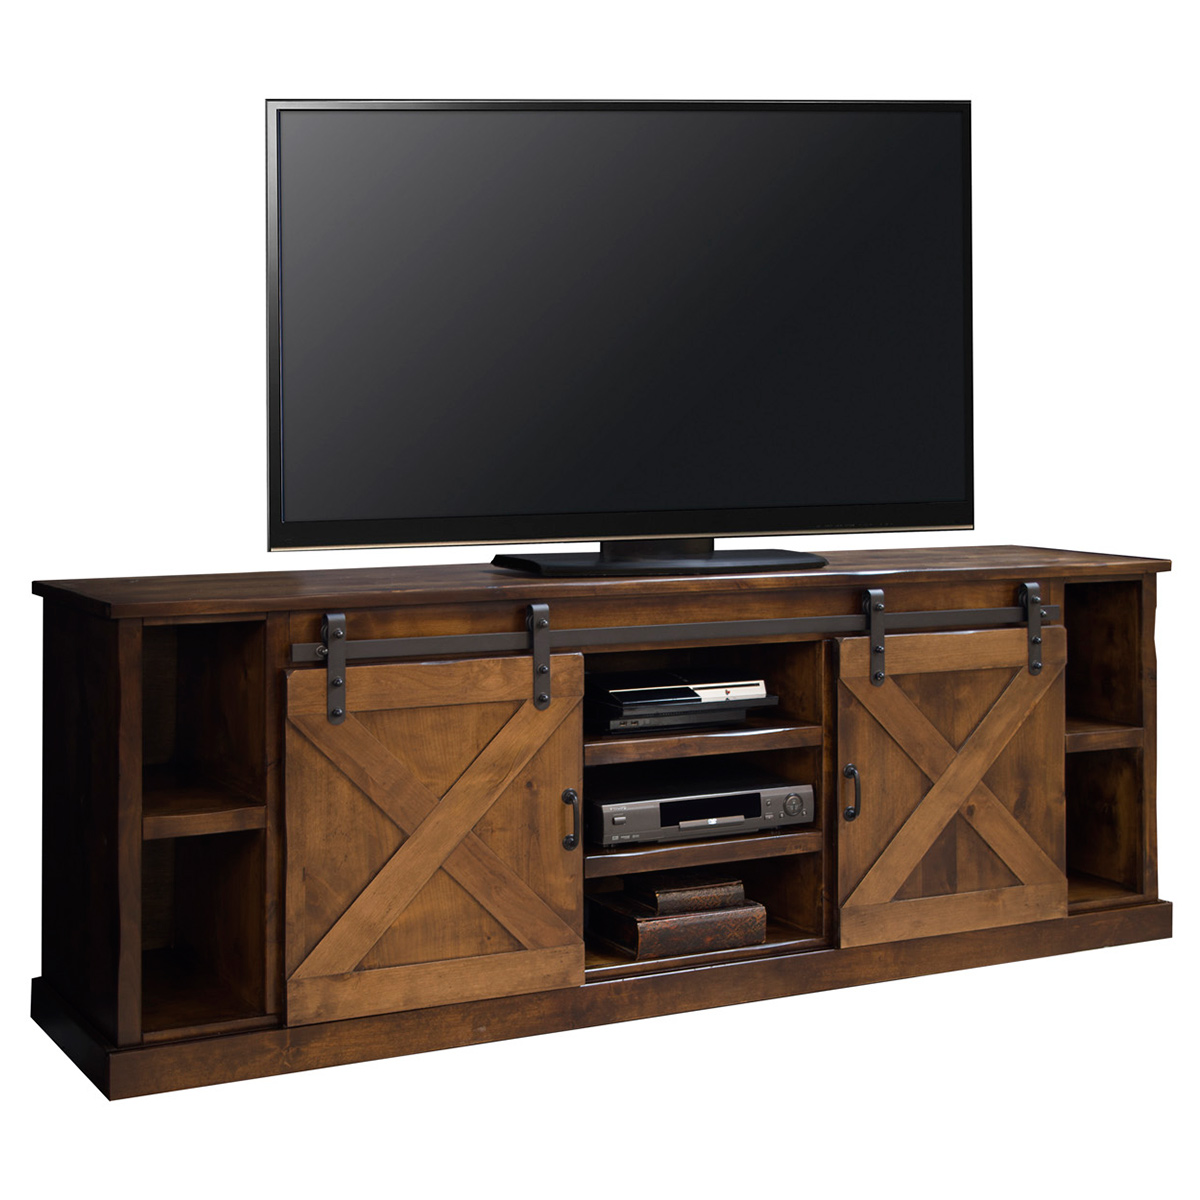 Farmhouse Corner Tv Stand Plans Legends Furniture Fh1415 Awy Farmhouse 85 Quot Tv Stand